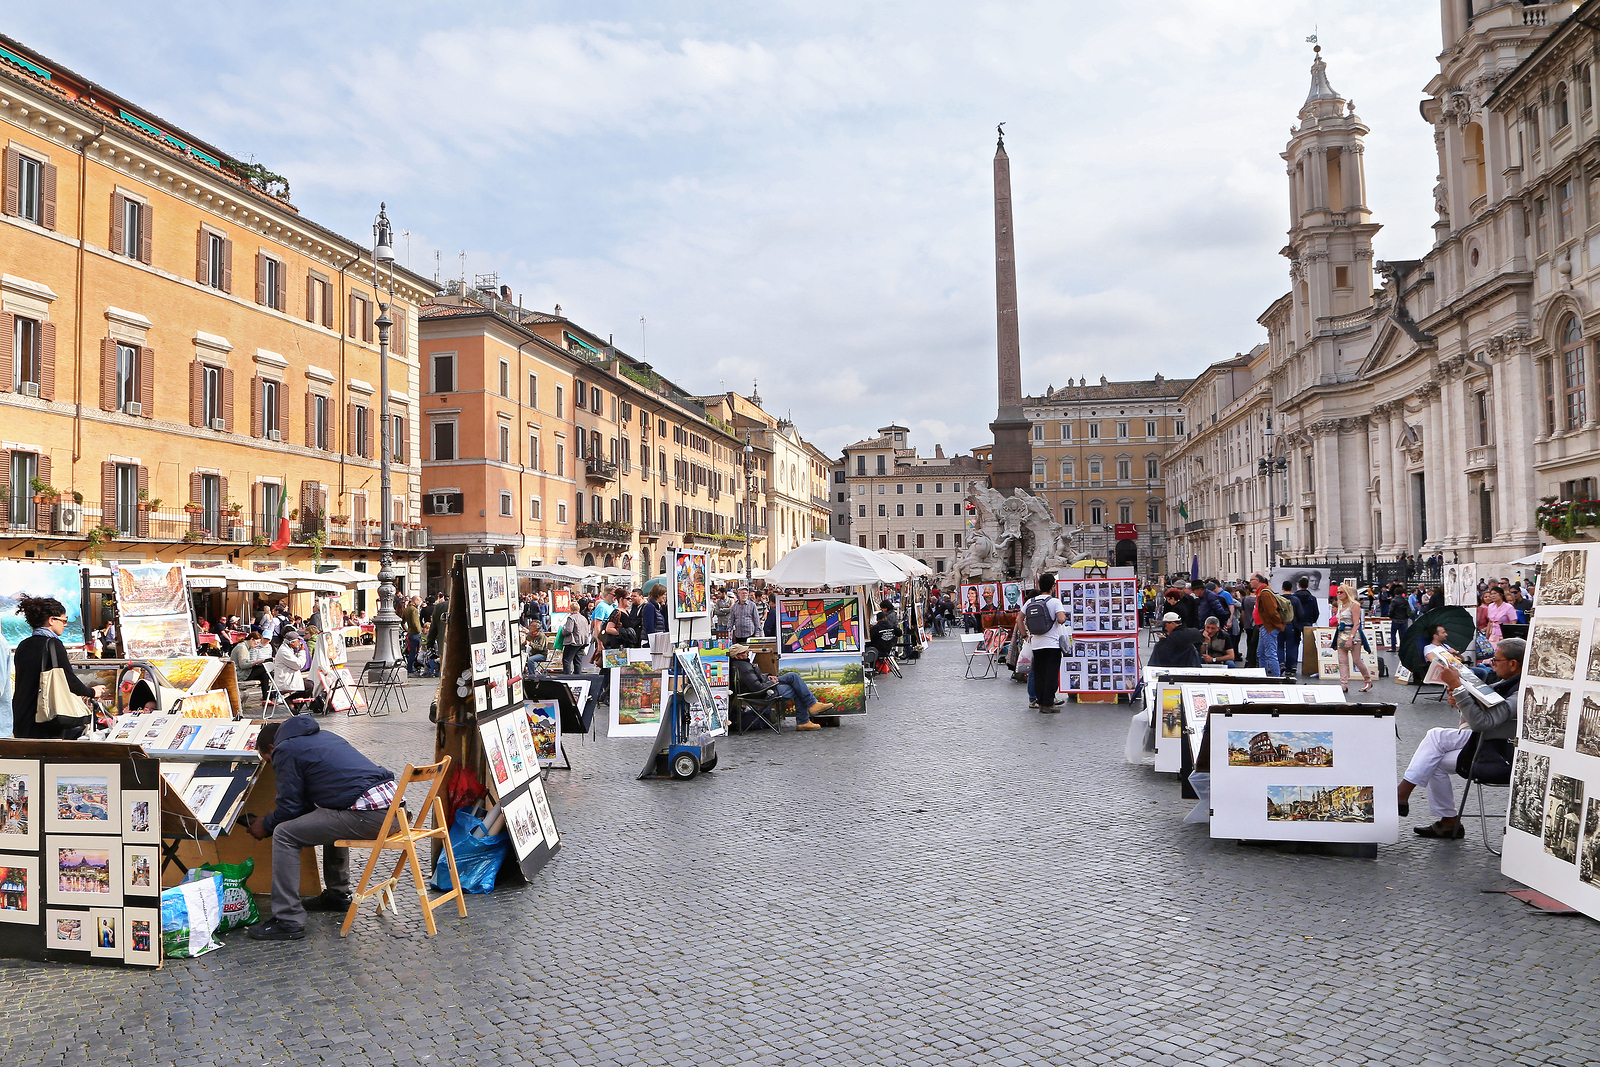 Rome Piazza Navona Christmas Market Dream Of Italy